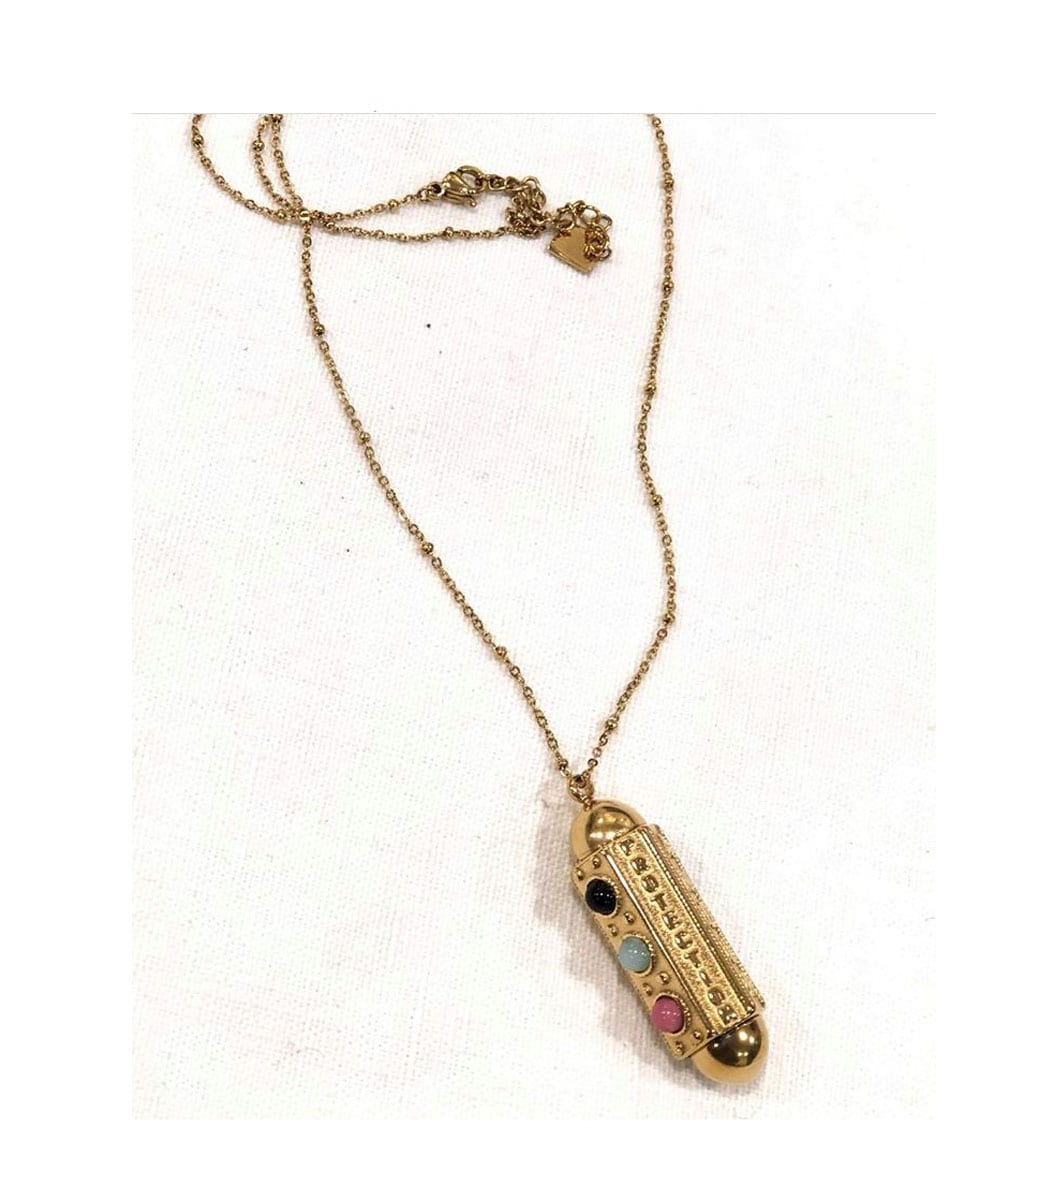 Long fine chain Moroccan inspired necklace